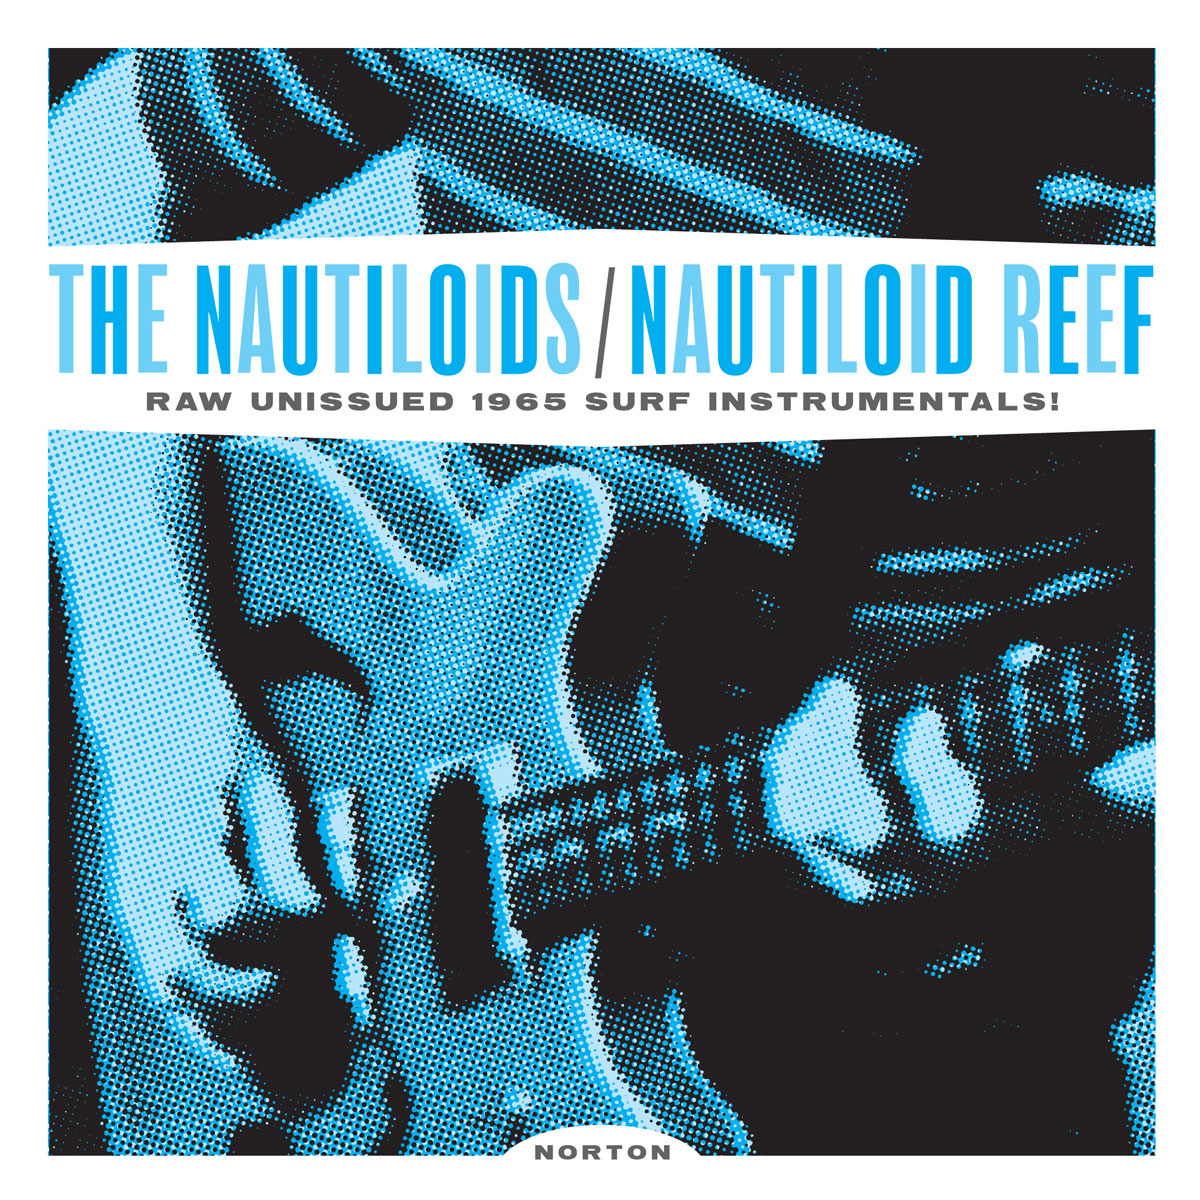 The Nautiloids - Nautiloid Reef 45